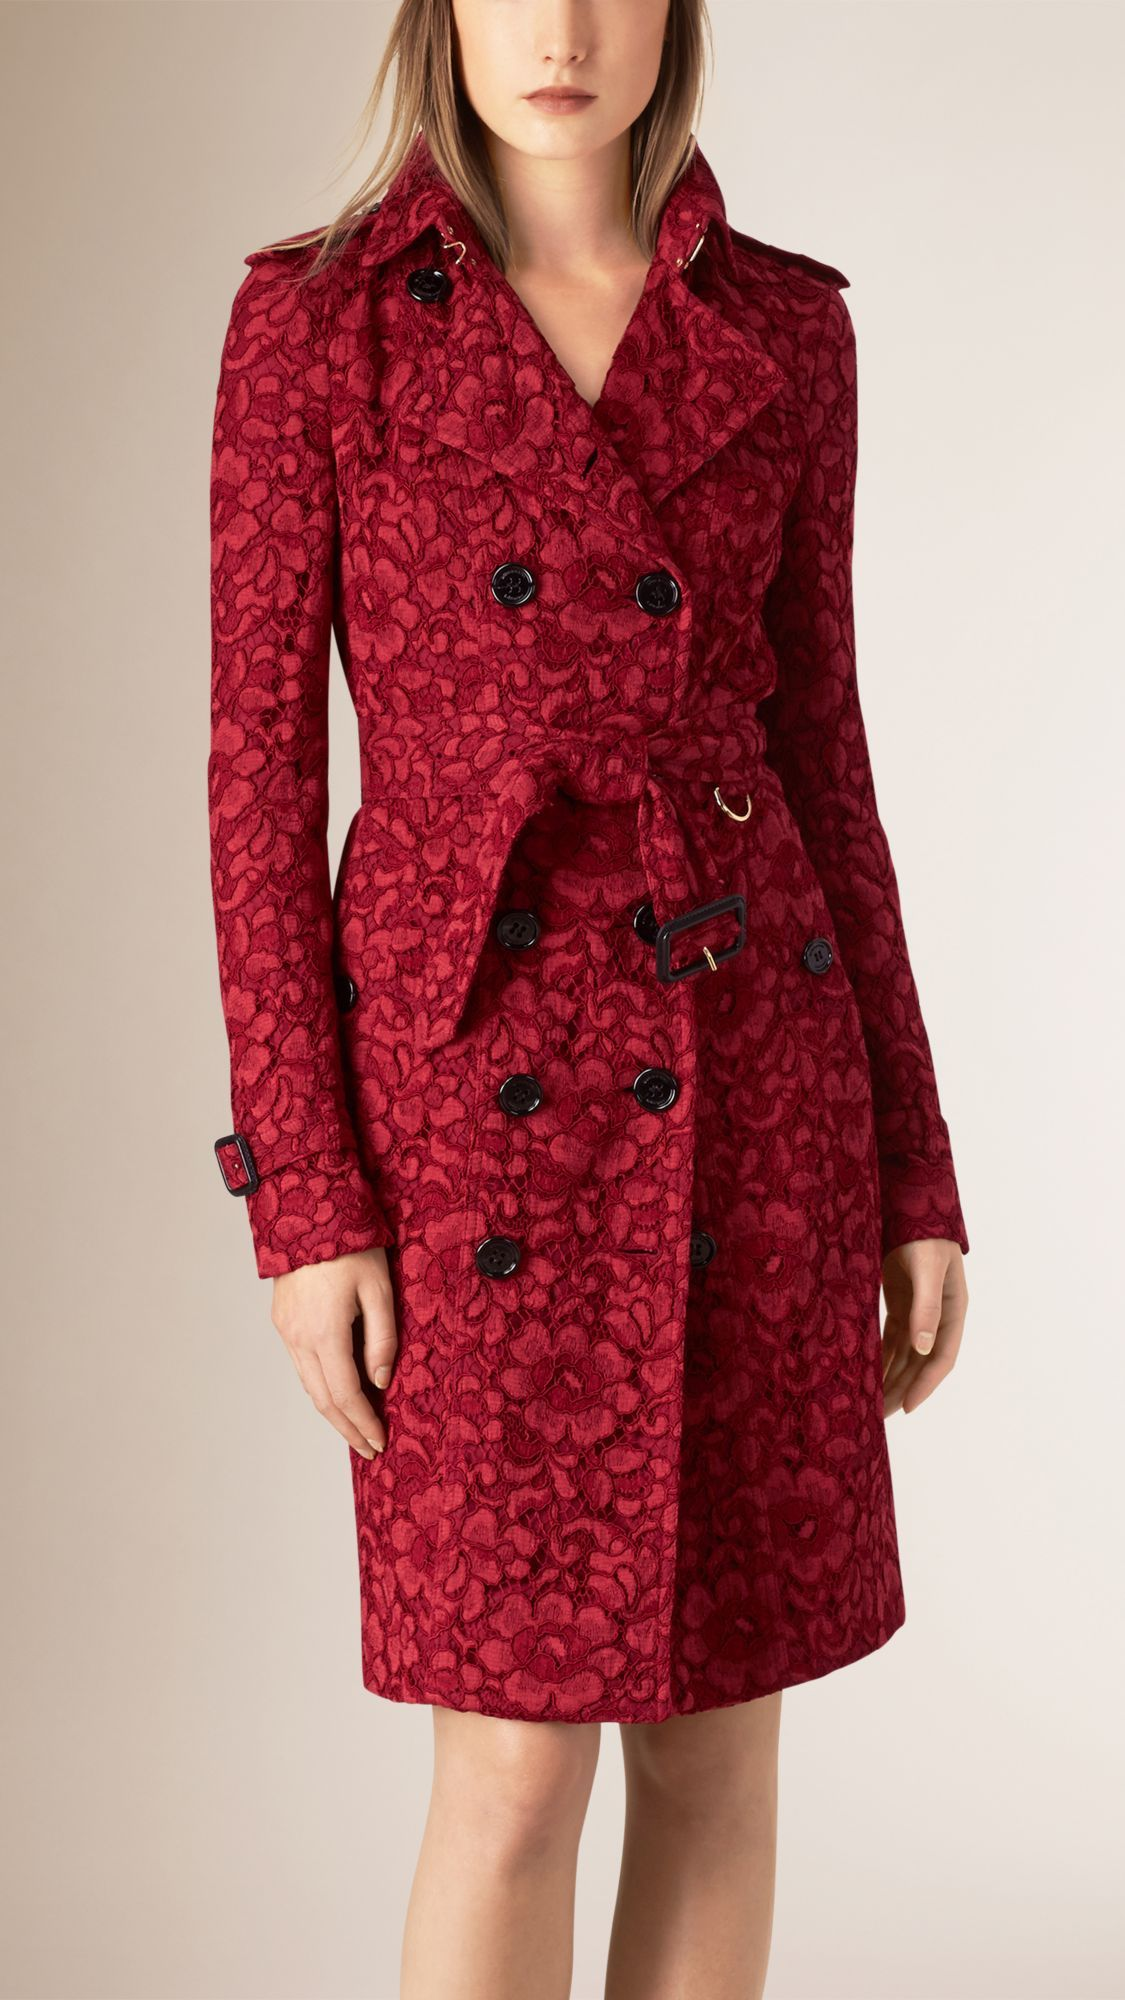 db89223062d Women s Trench Coats in Parade red French Lace Trench